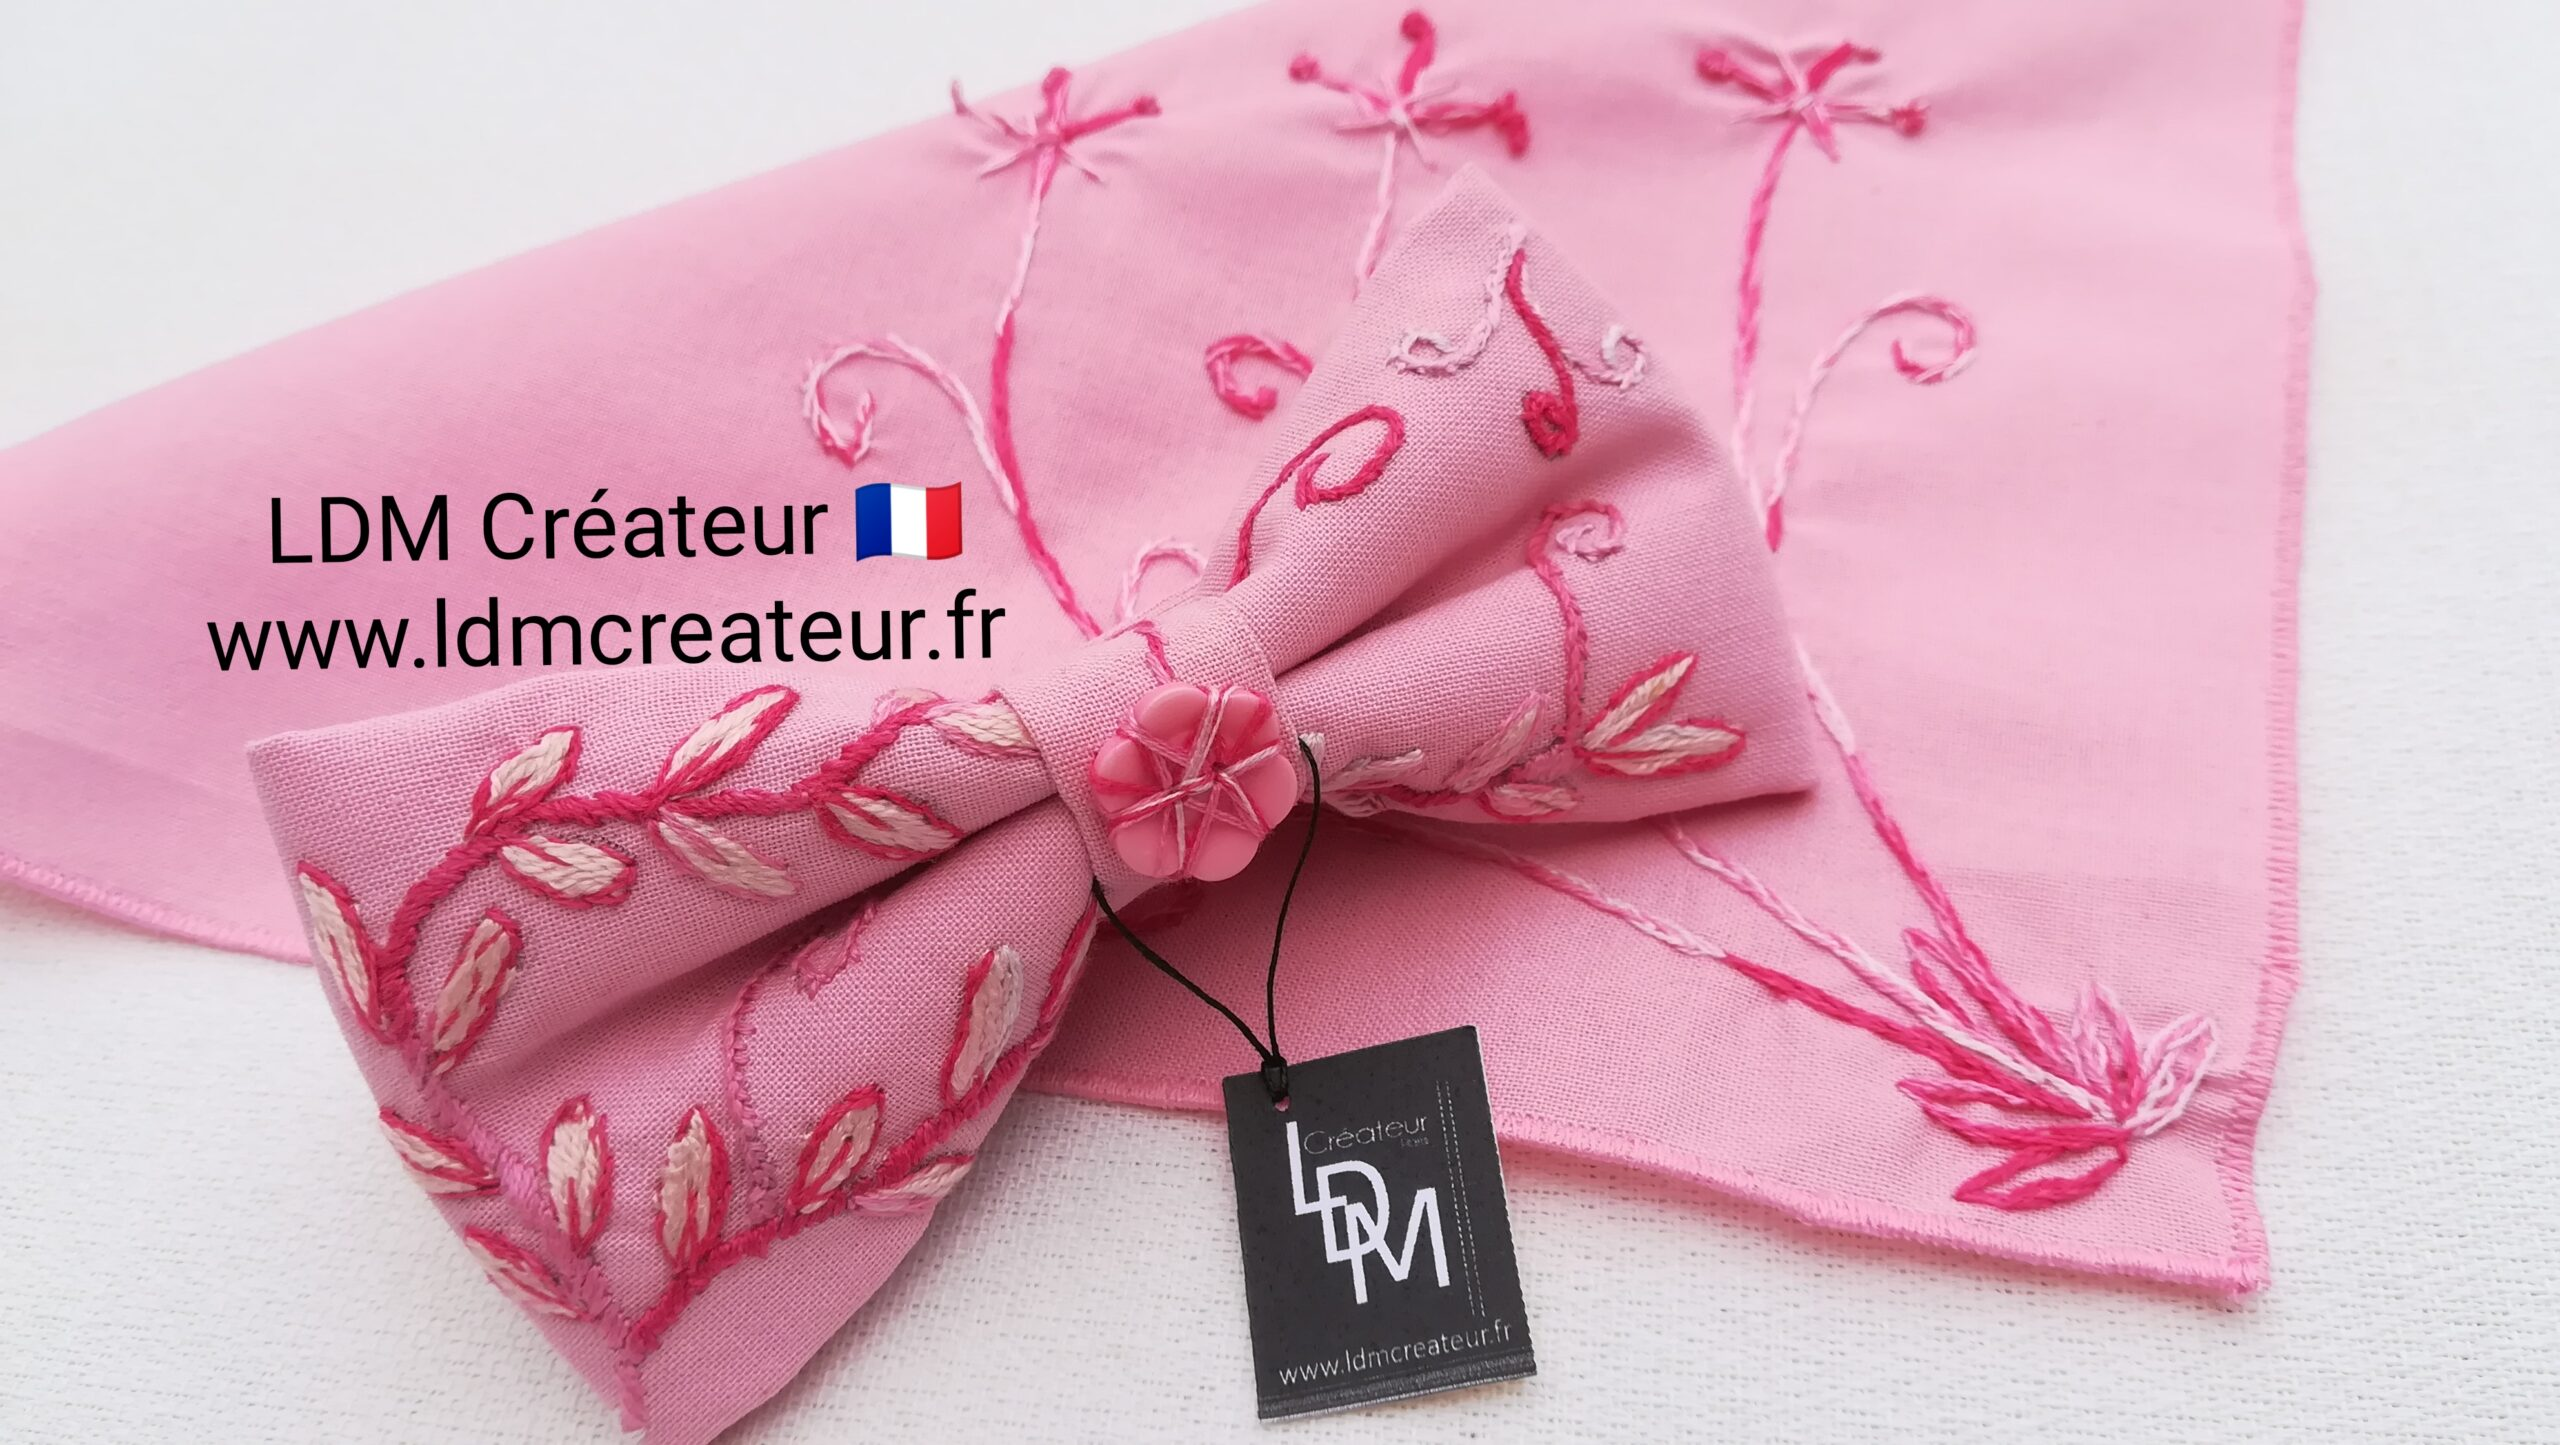 noeud-pap-papillon-rose-blanc-brode-mariage-homme-costume-original-ldmcreateur-Gignac